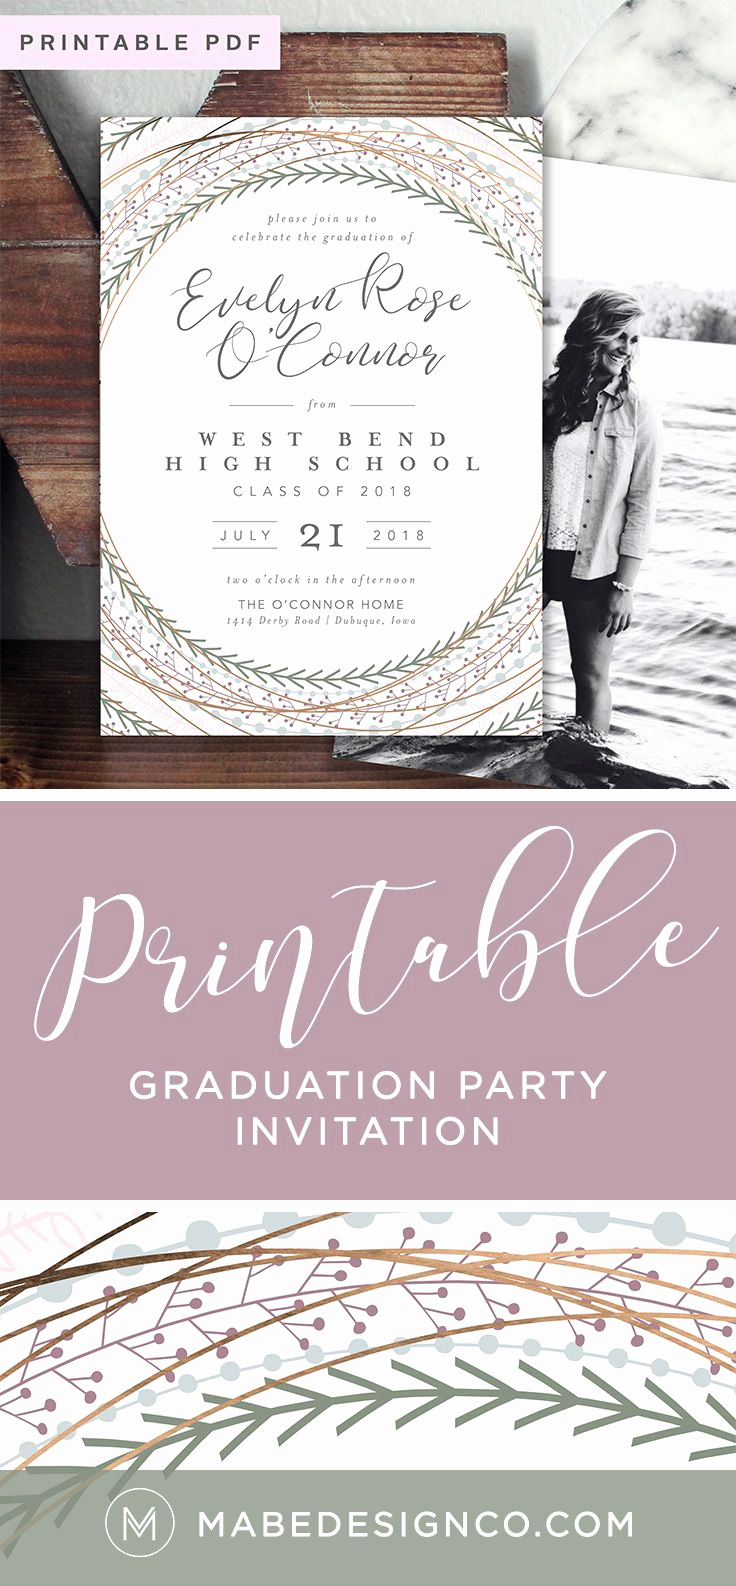 Wording for Graduation Invitation Lovely Best 25 Graduation Invitation Wording Ideas On Pinterest